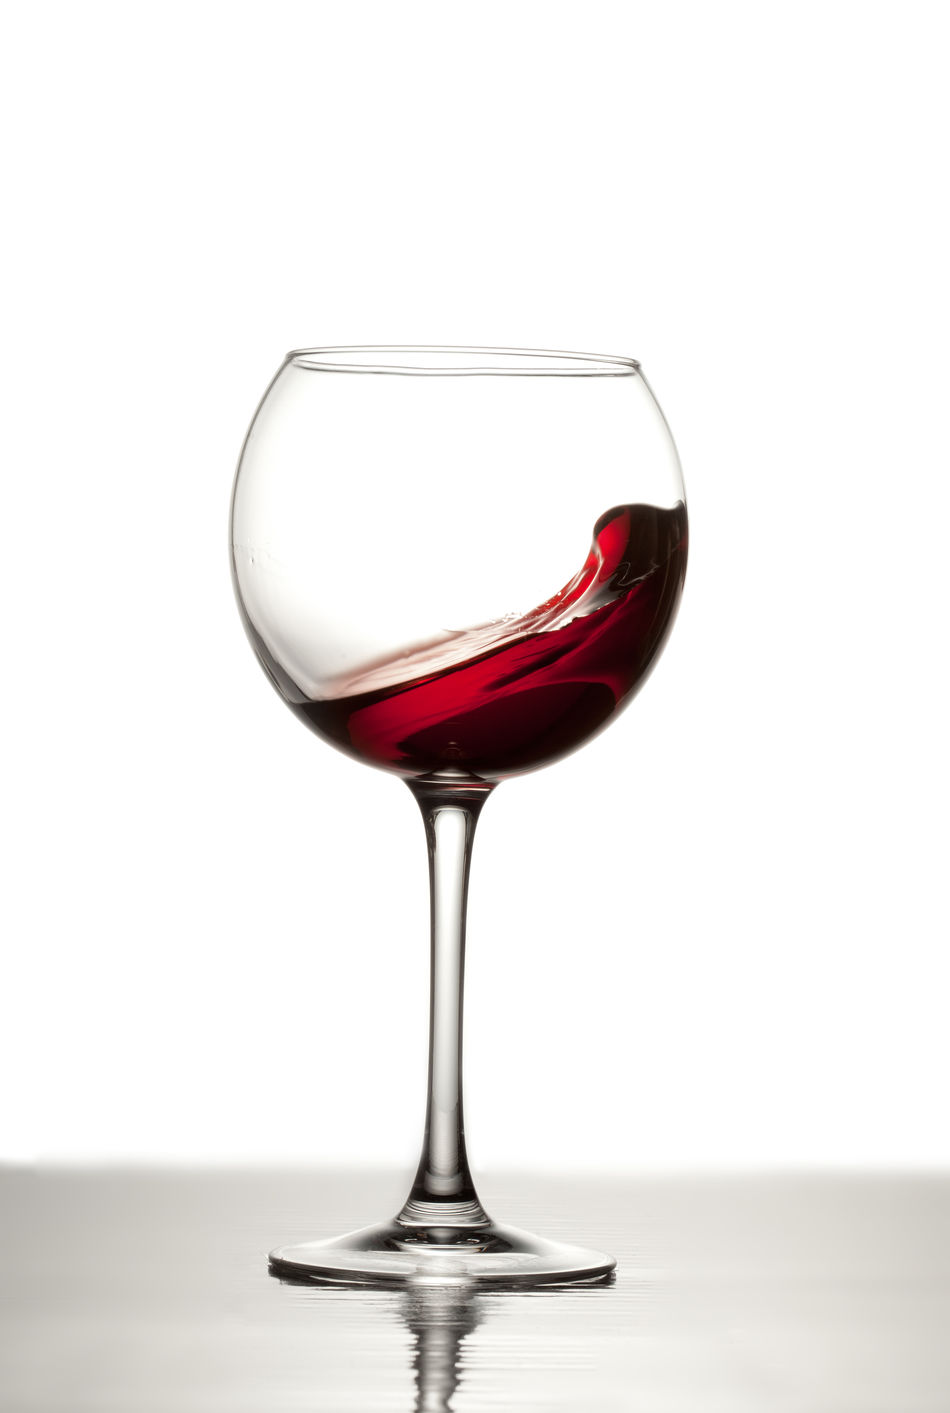 Playing with splashes Alcohol Close-up Drinking Glass Food And Drink No People Red Wine Studio Shot White Background Wine Wineglass Winetasting